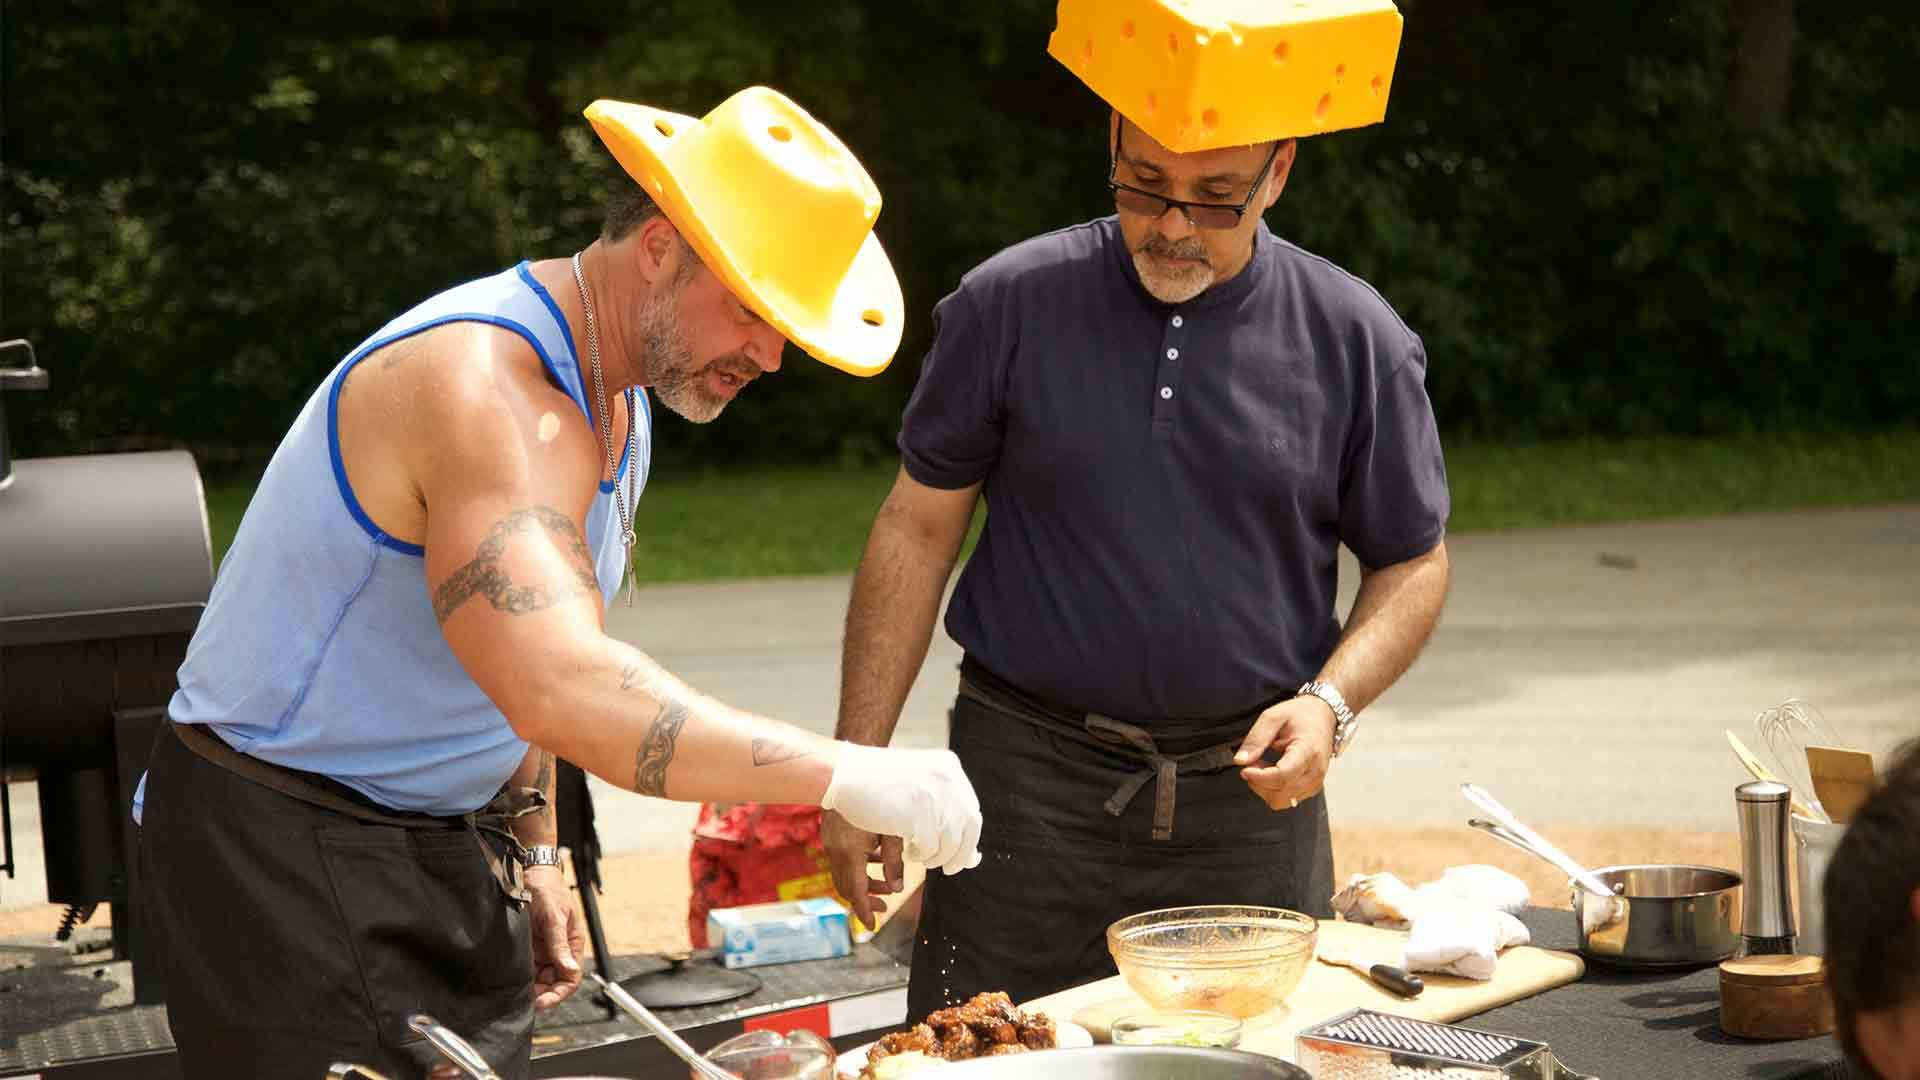 Big Bad BBQ Brawl Cheese hats